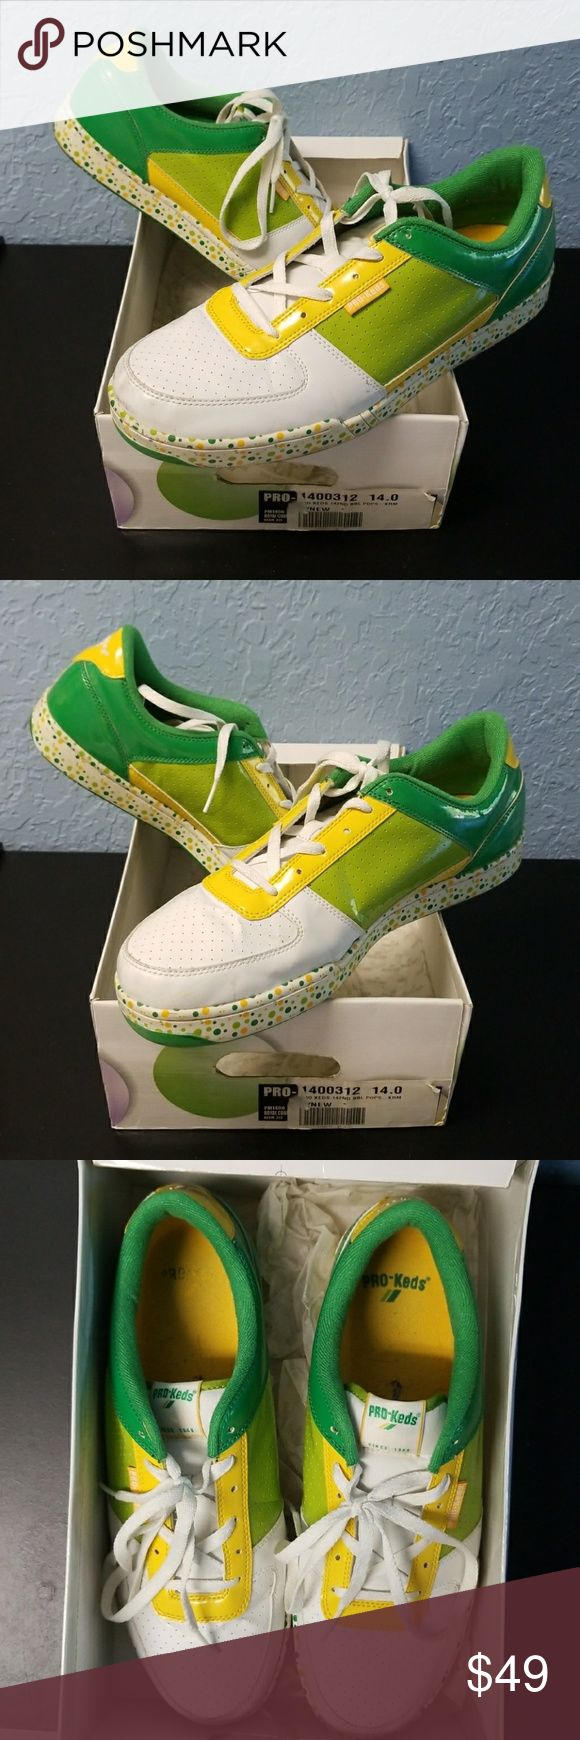 Pro-Keds Sneakers Green, yellow and white Pro-life, size 14, lightly worn in box Pro-Keds Shoes Sneakers